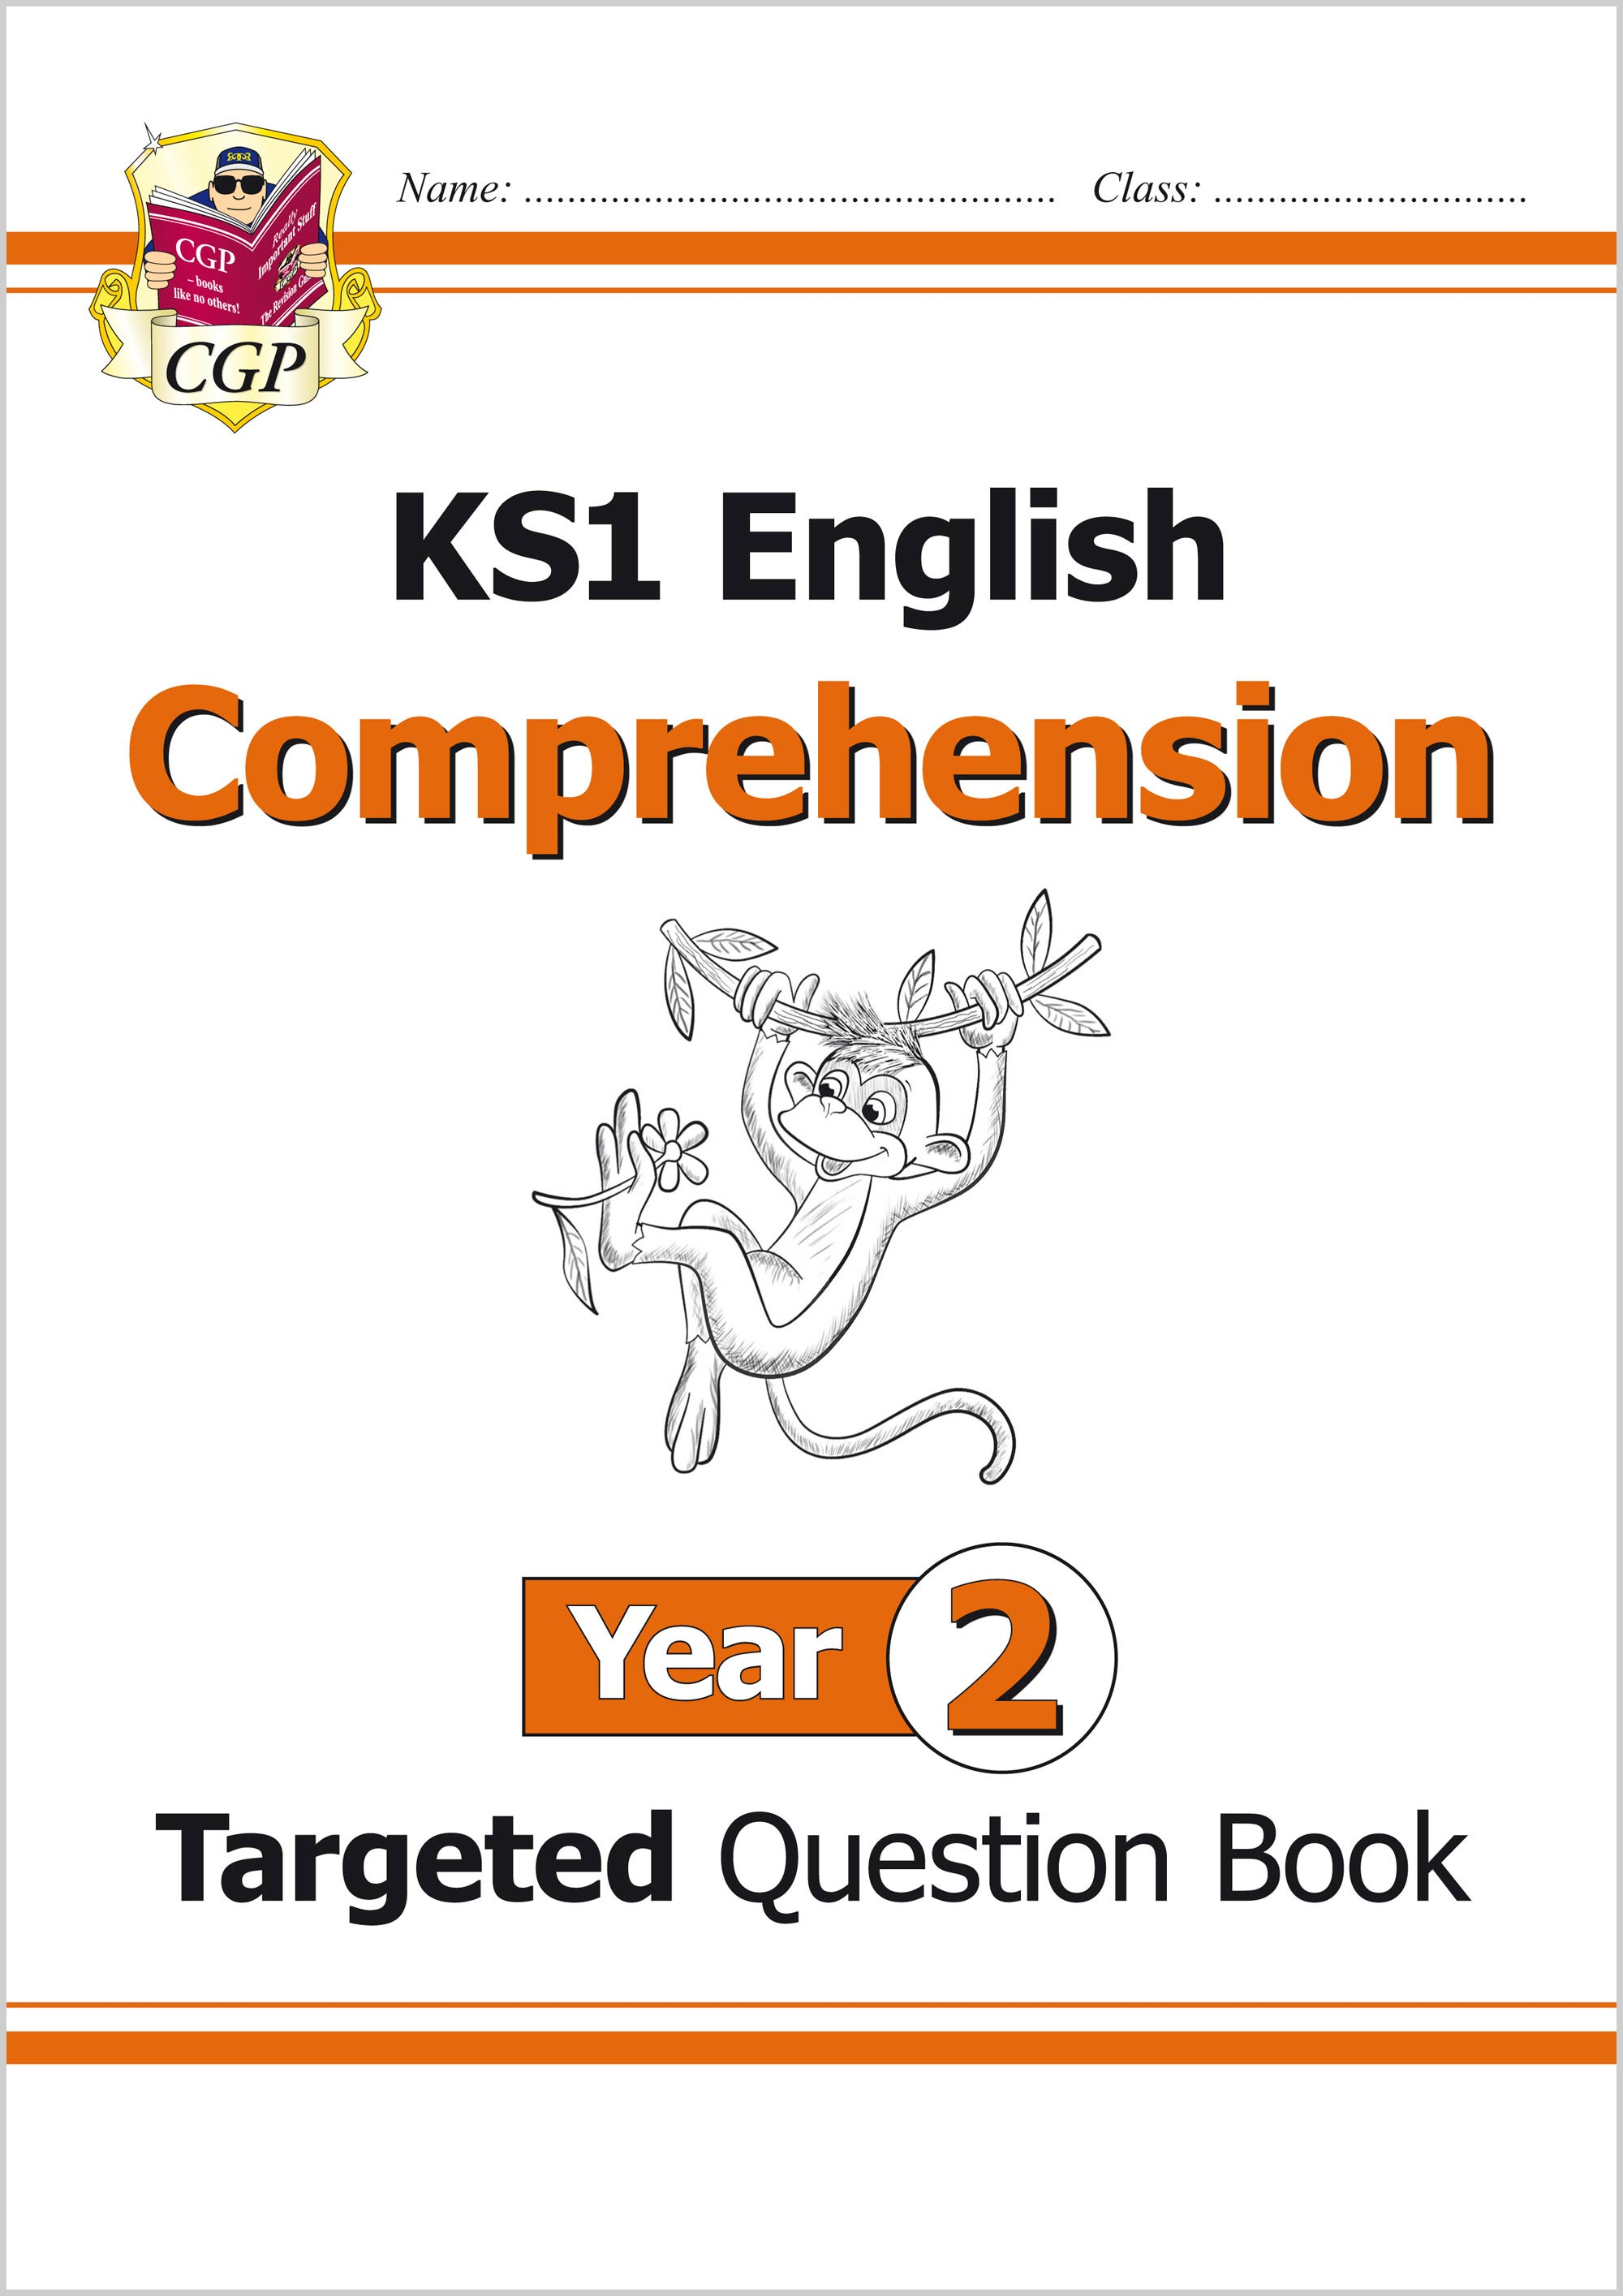 E2CW11 - New KS1 English Targeted Question Book: Comprehension - Year 2